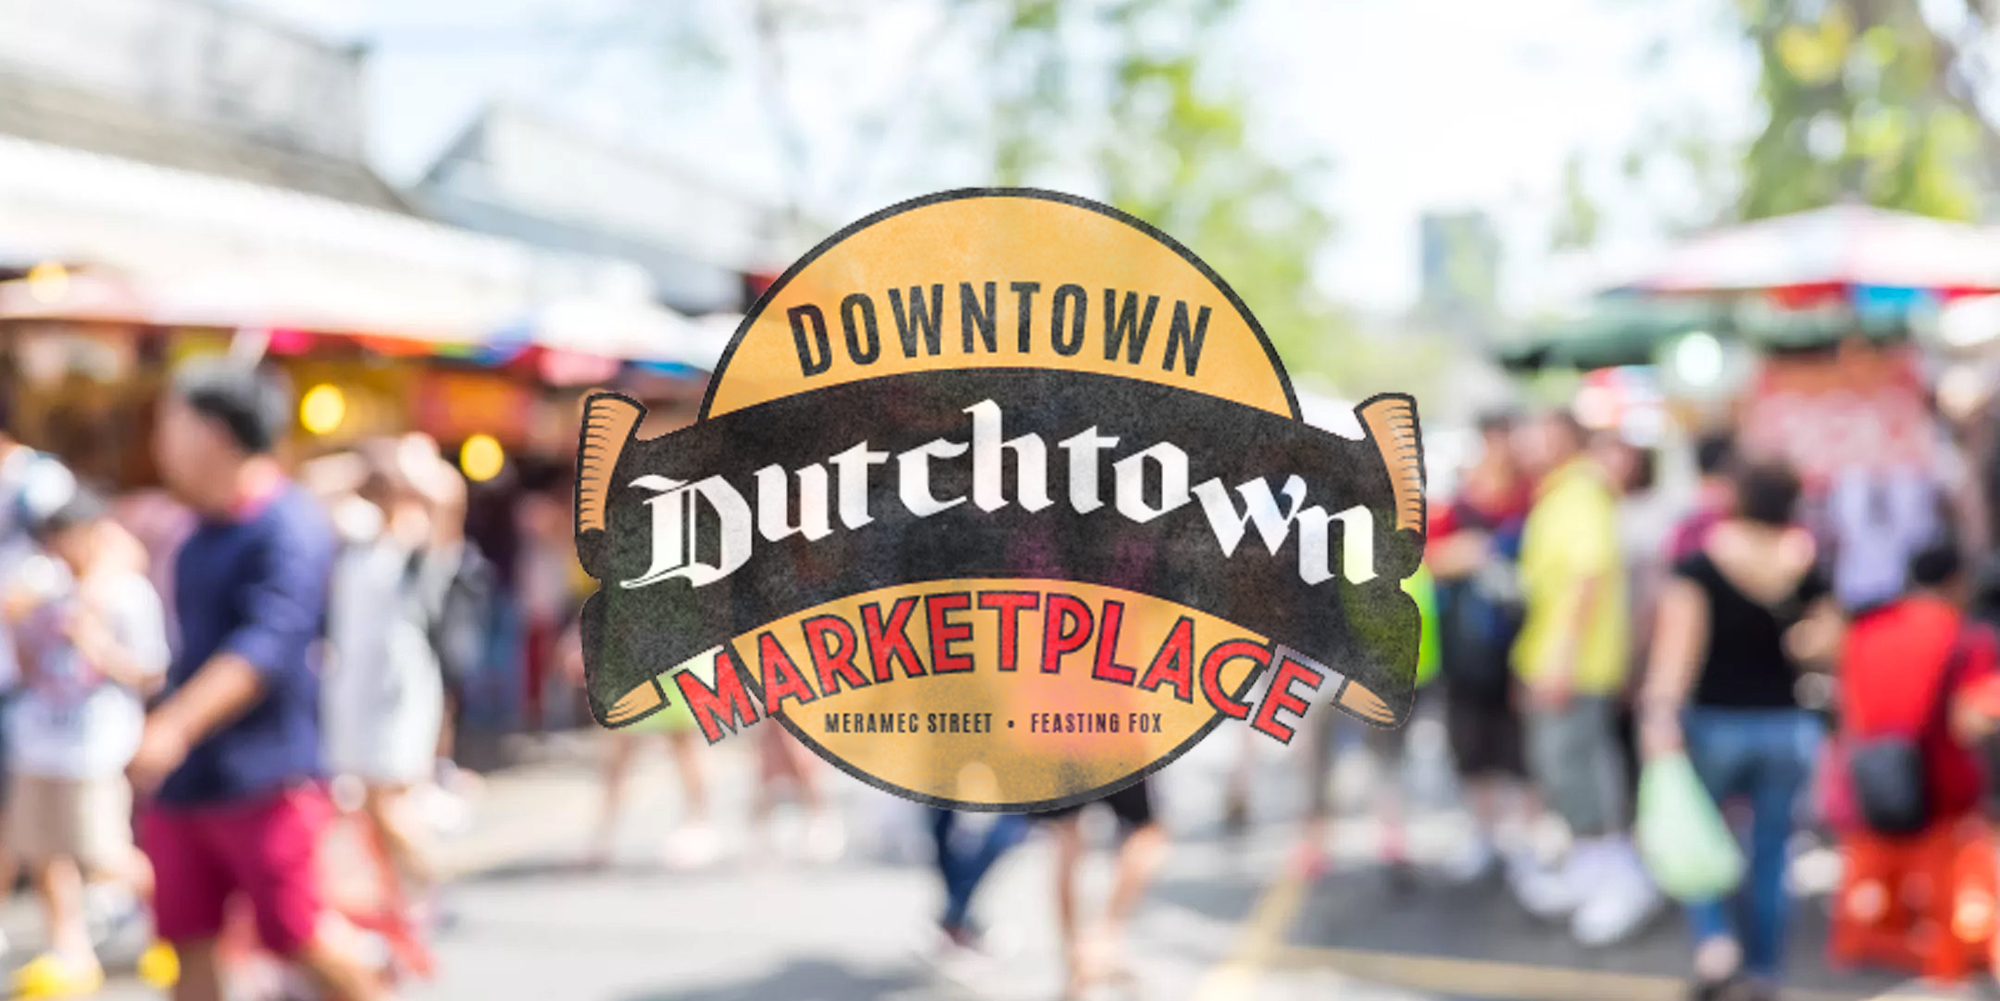 Downtown Dutchtown Marketplace.